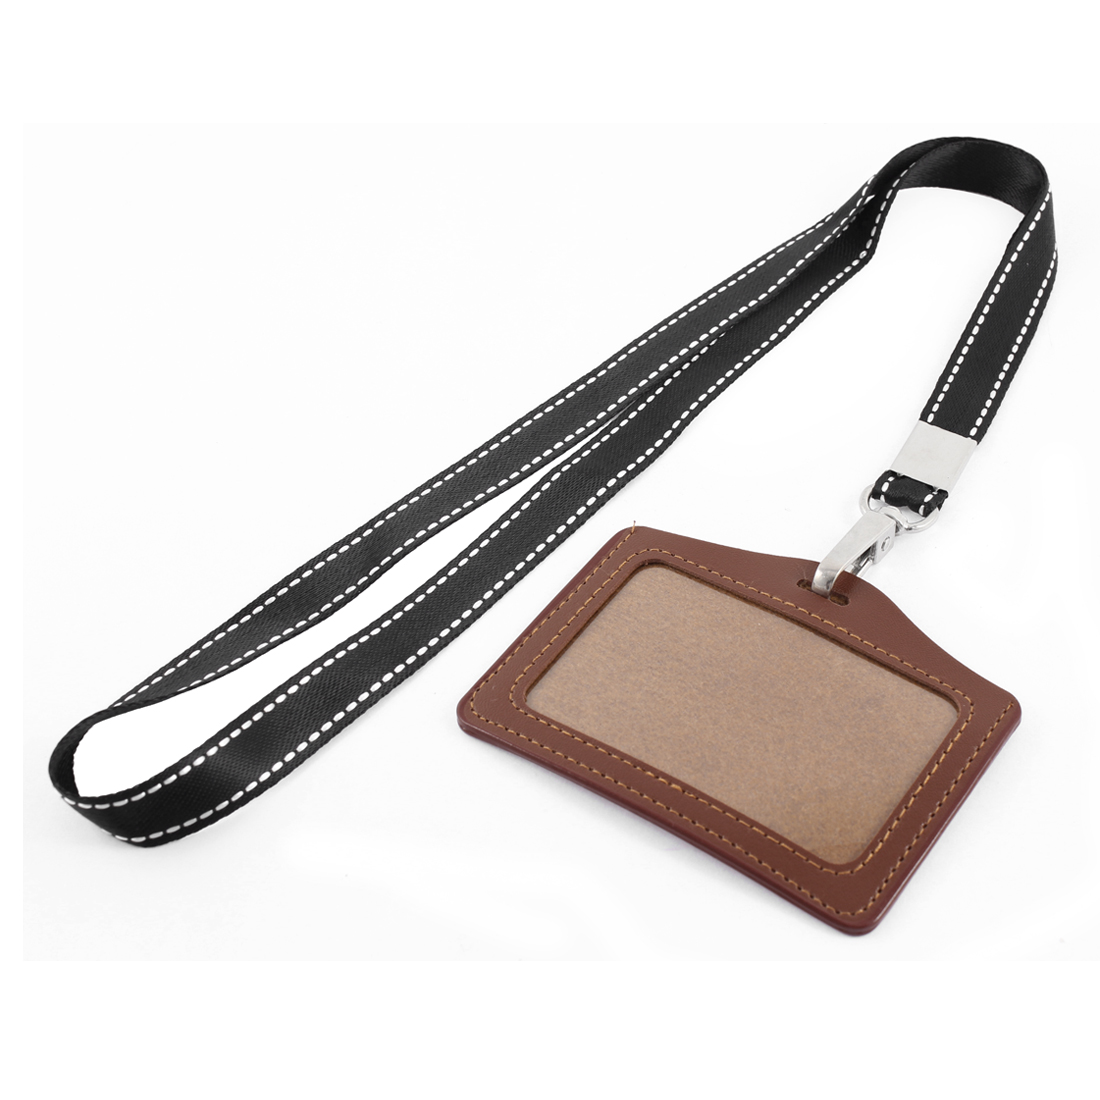 Neck Strap Faux Leather Horizontal Work School ID Card Badge Holder Brown Black